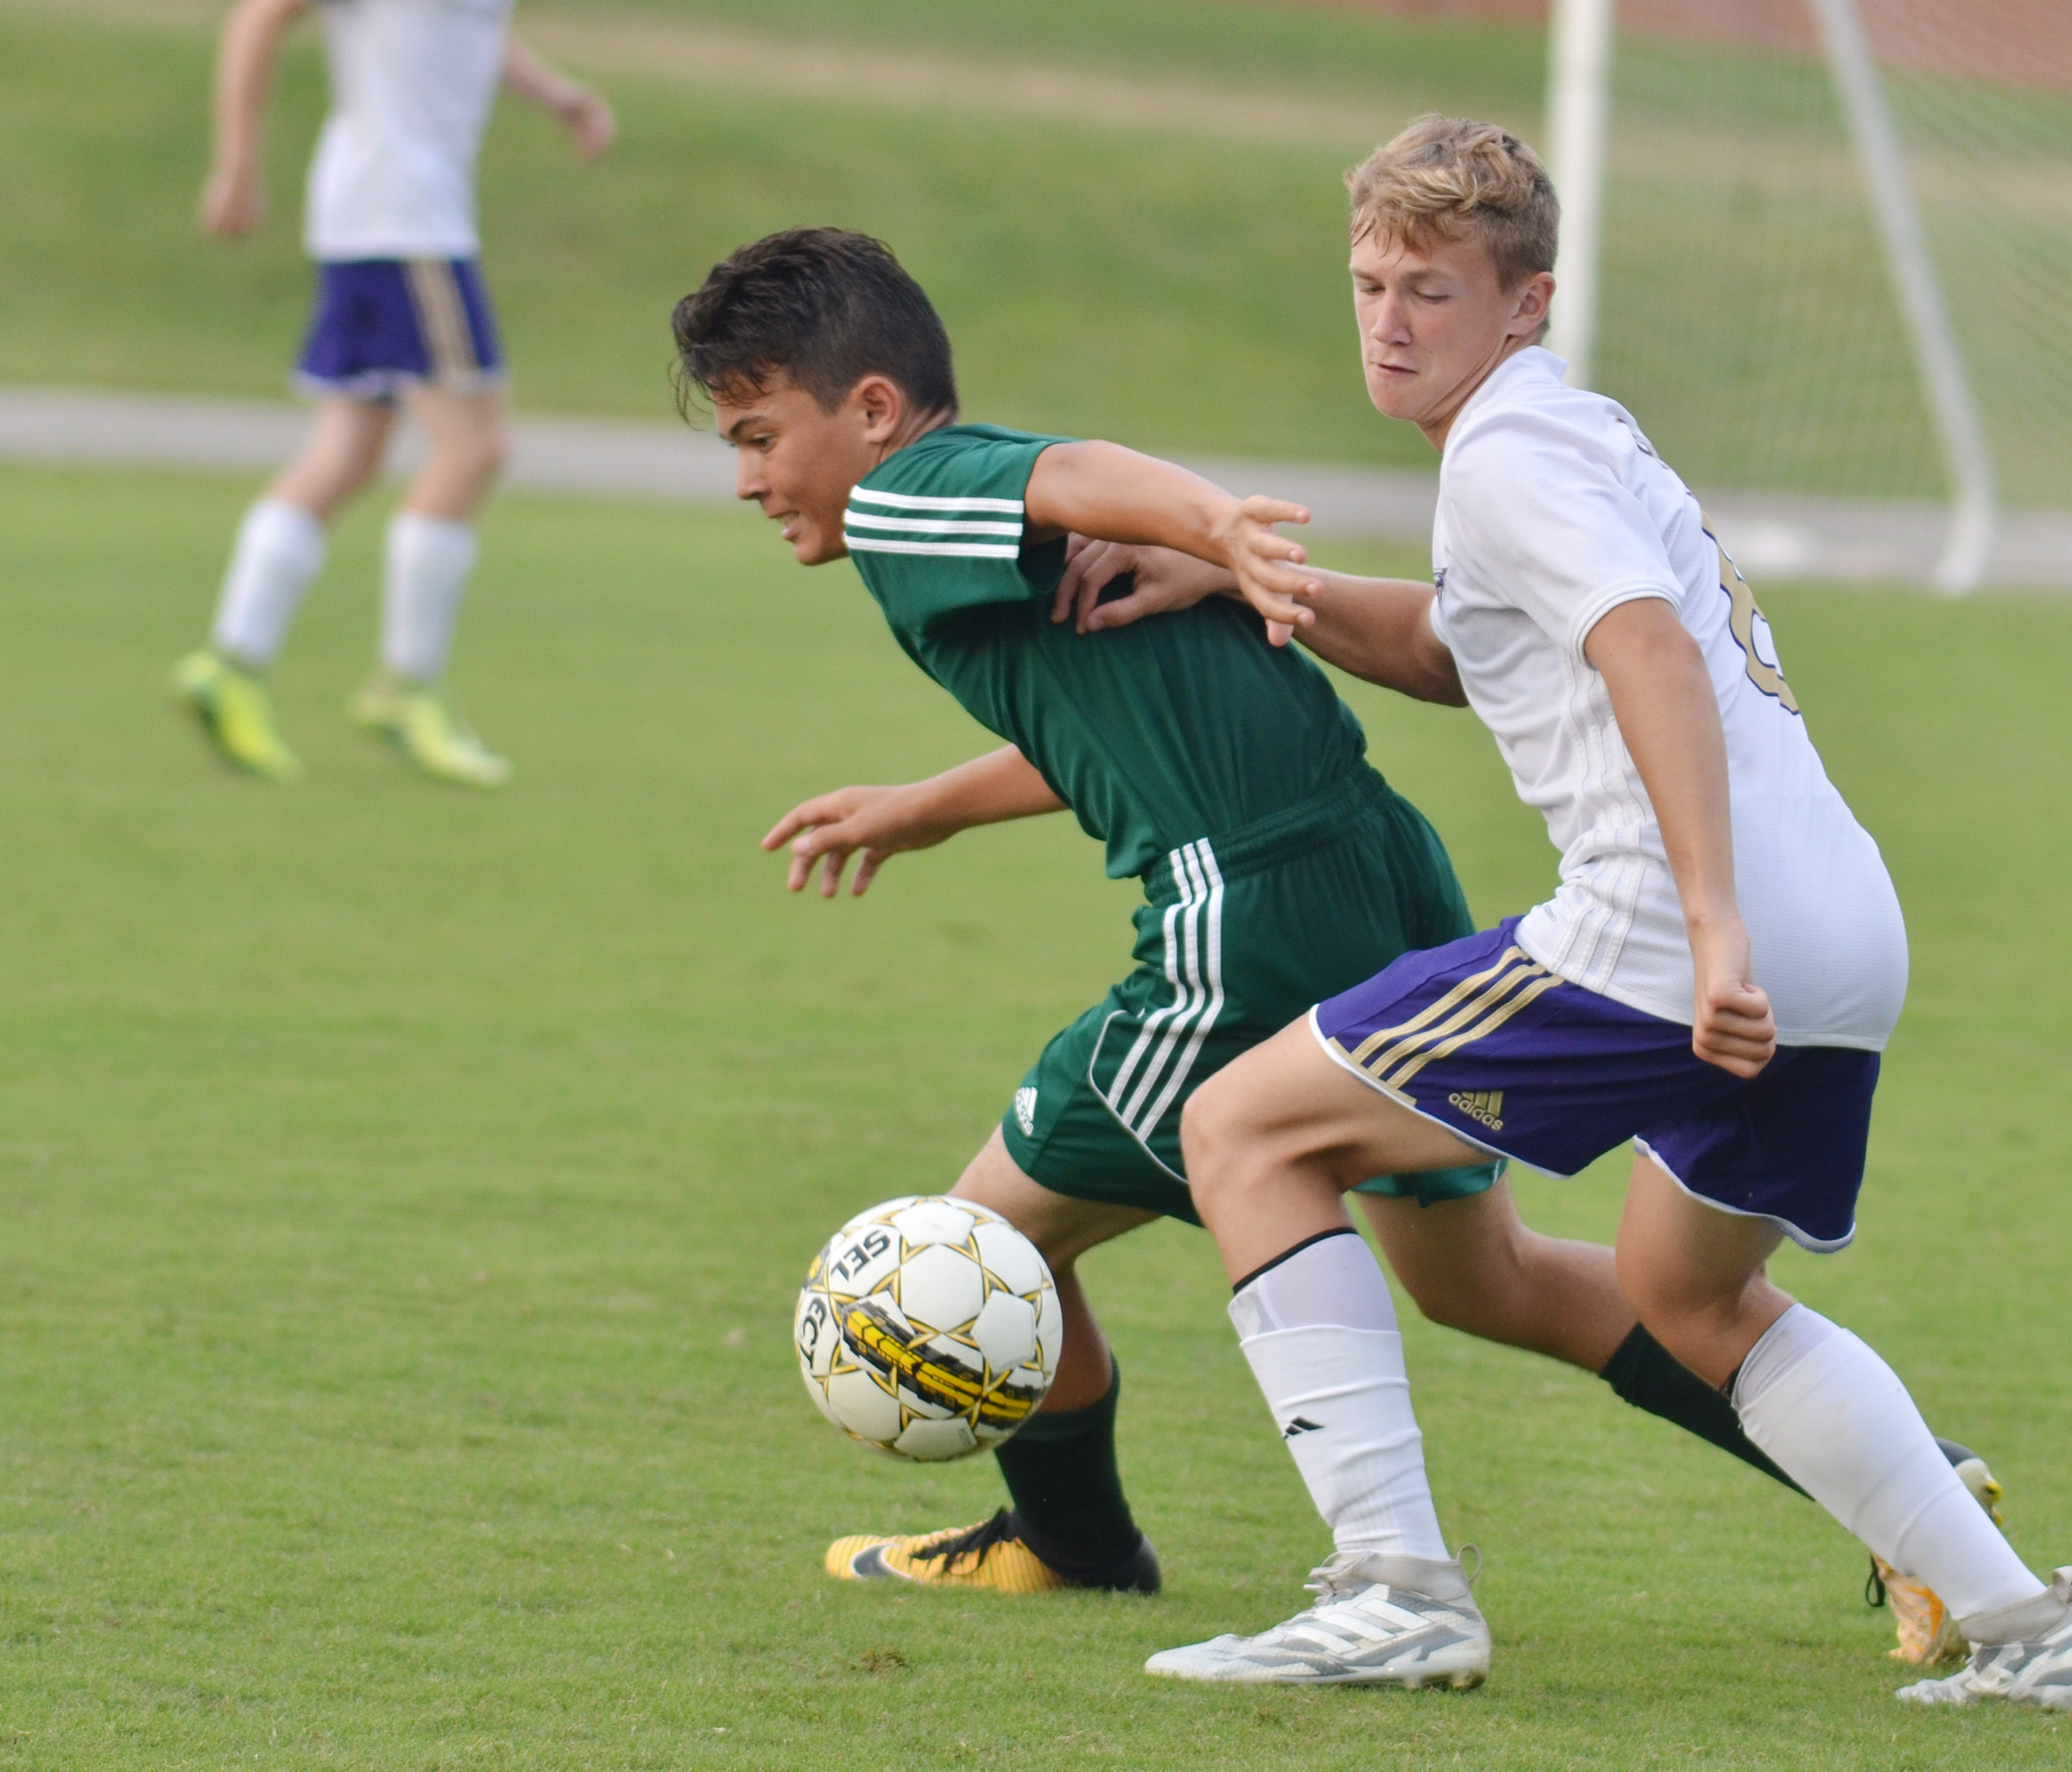 CHS freshman Blase Wheatley fights for control of the ball.